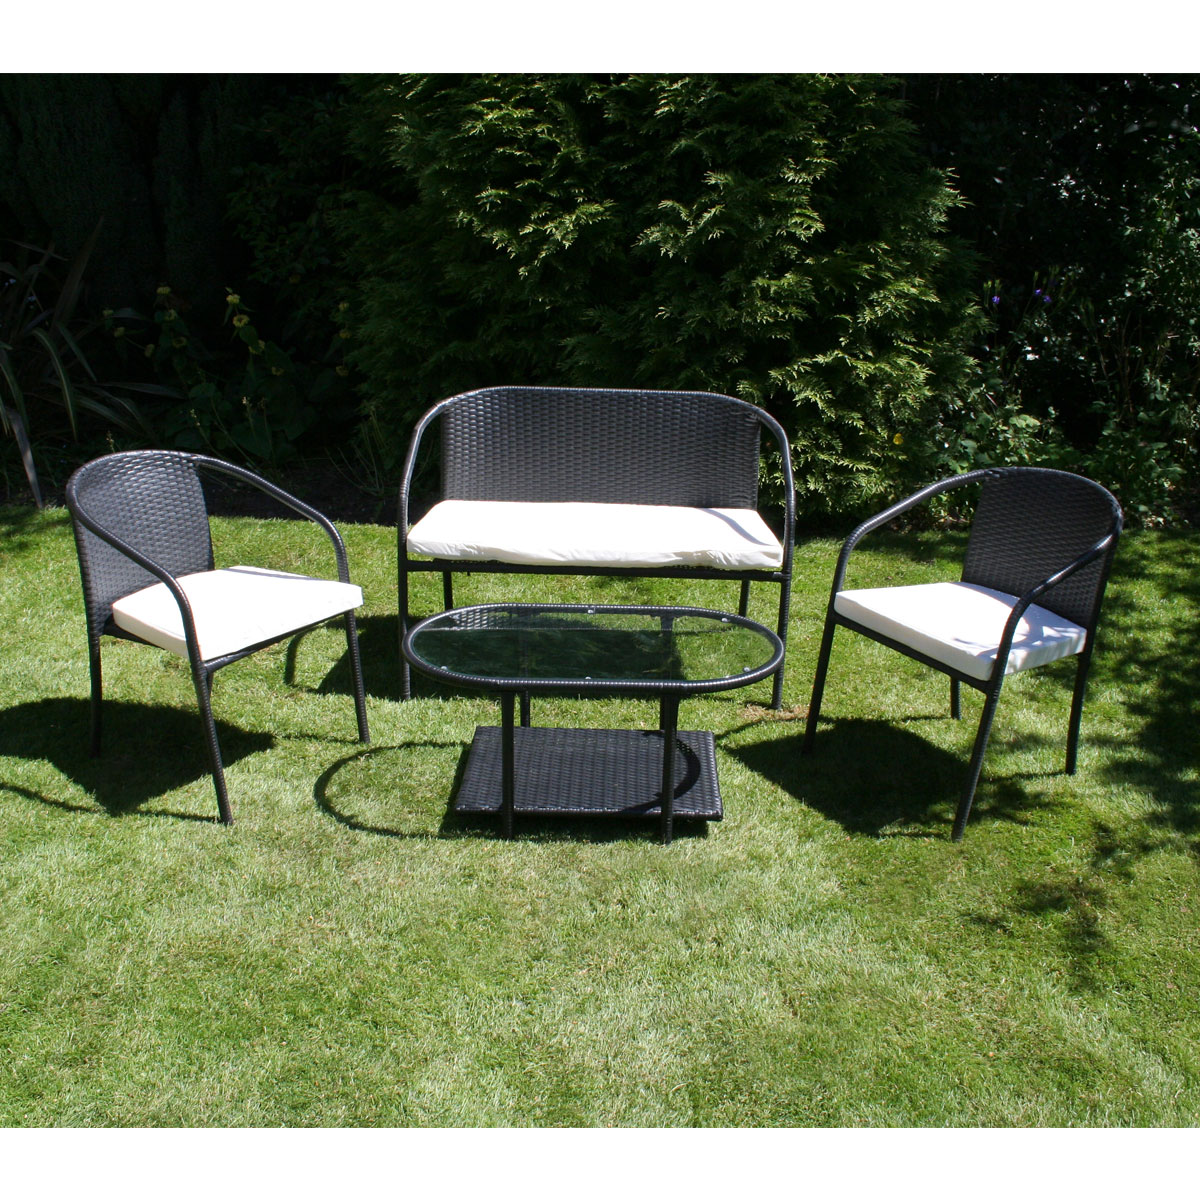 rattan 4 piece sofa set black mcguire charles bentley outdoor patio